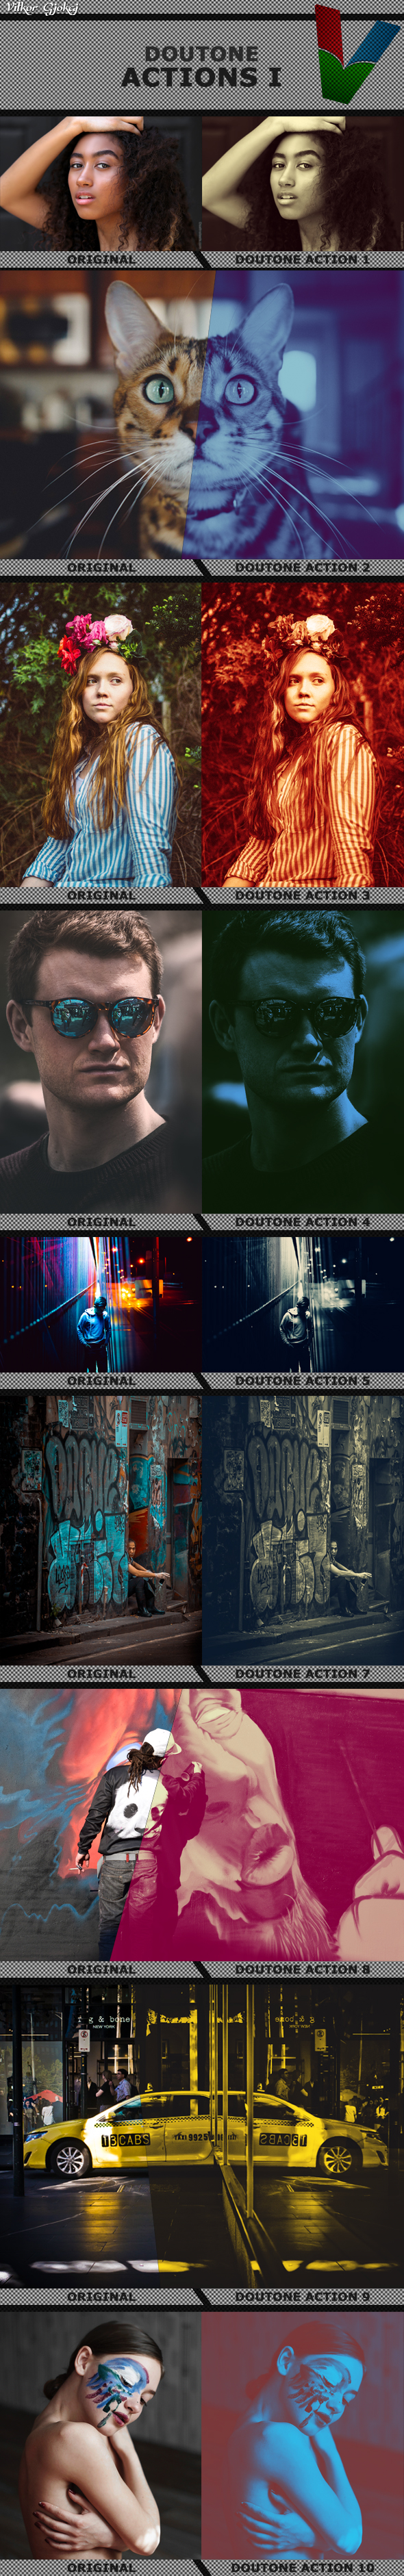 Doutone Actions 1 - Photo Effects Actions